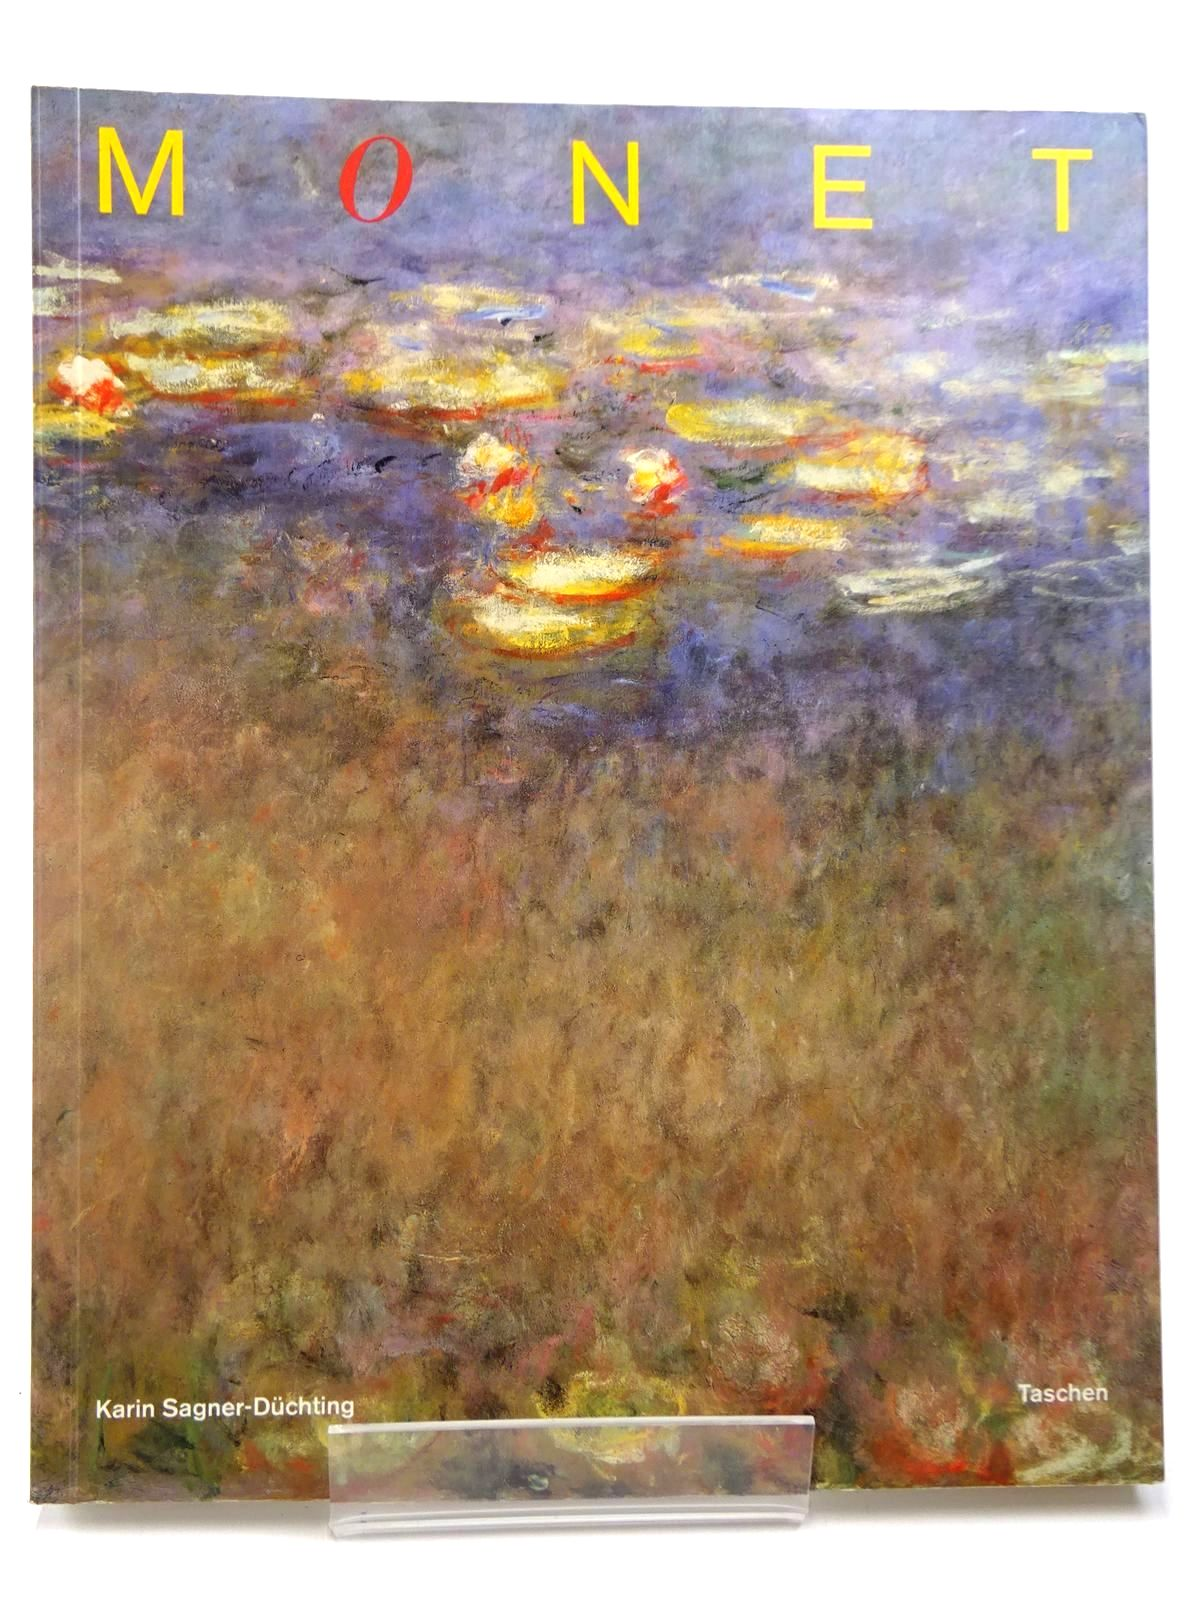 Photo of CLAUDE MONET 1840-1926 A FEAST FOR THE EYES written by Sagner-Duchting, Karin illustrated by Monet, Claude published by Benedikt Taschen (STOCK CODE: 2129749)  for sale by Stella & Rose's Books